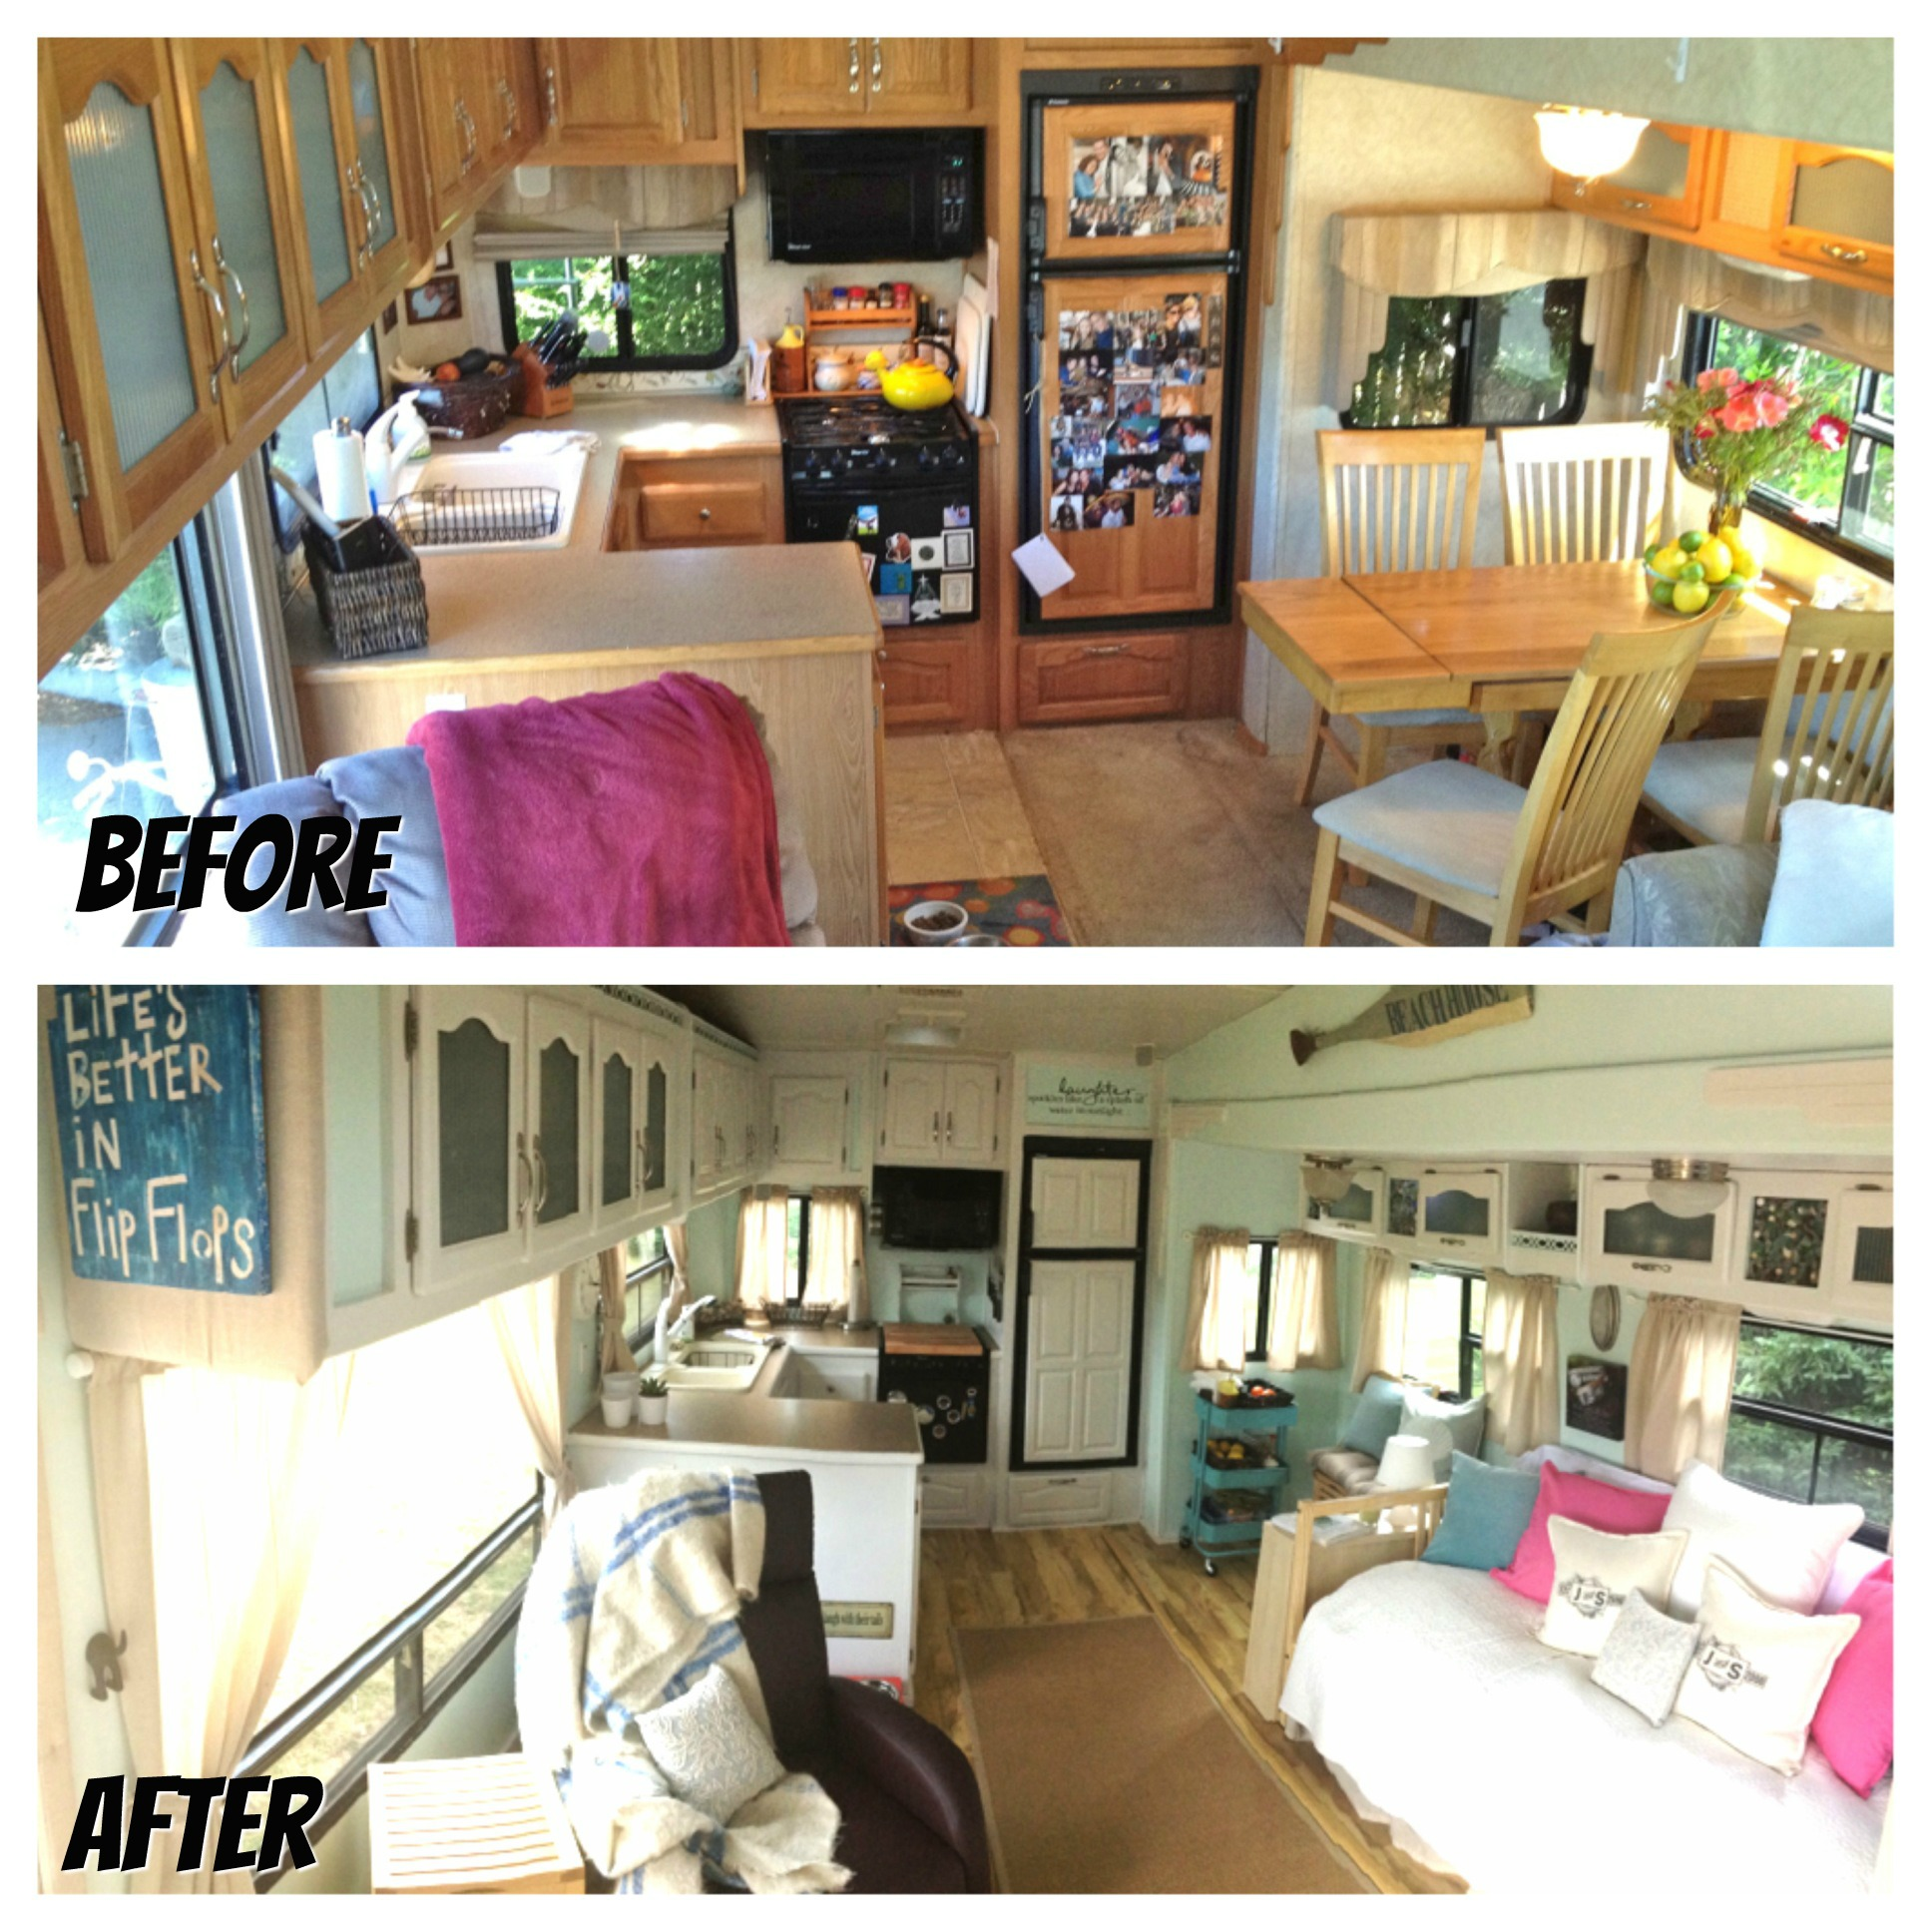 RVObsession - Fifth Wheel Renovations - See how Stephanie and Jim have turned this fifth wheel camper into their haven home.